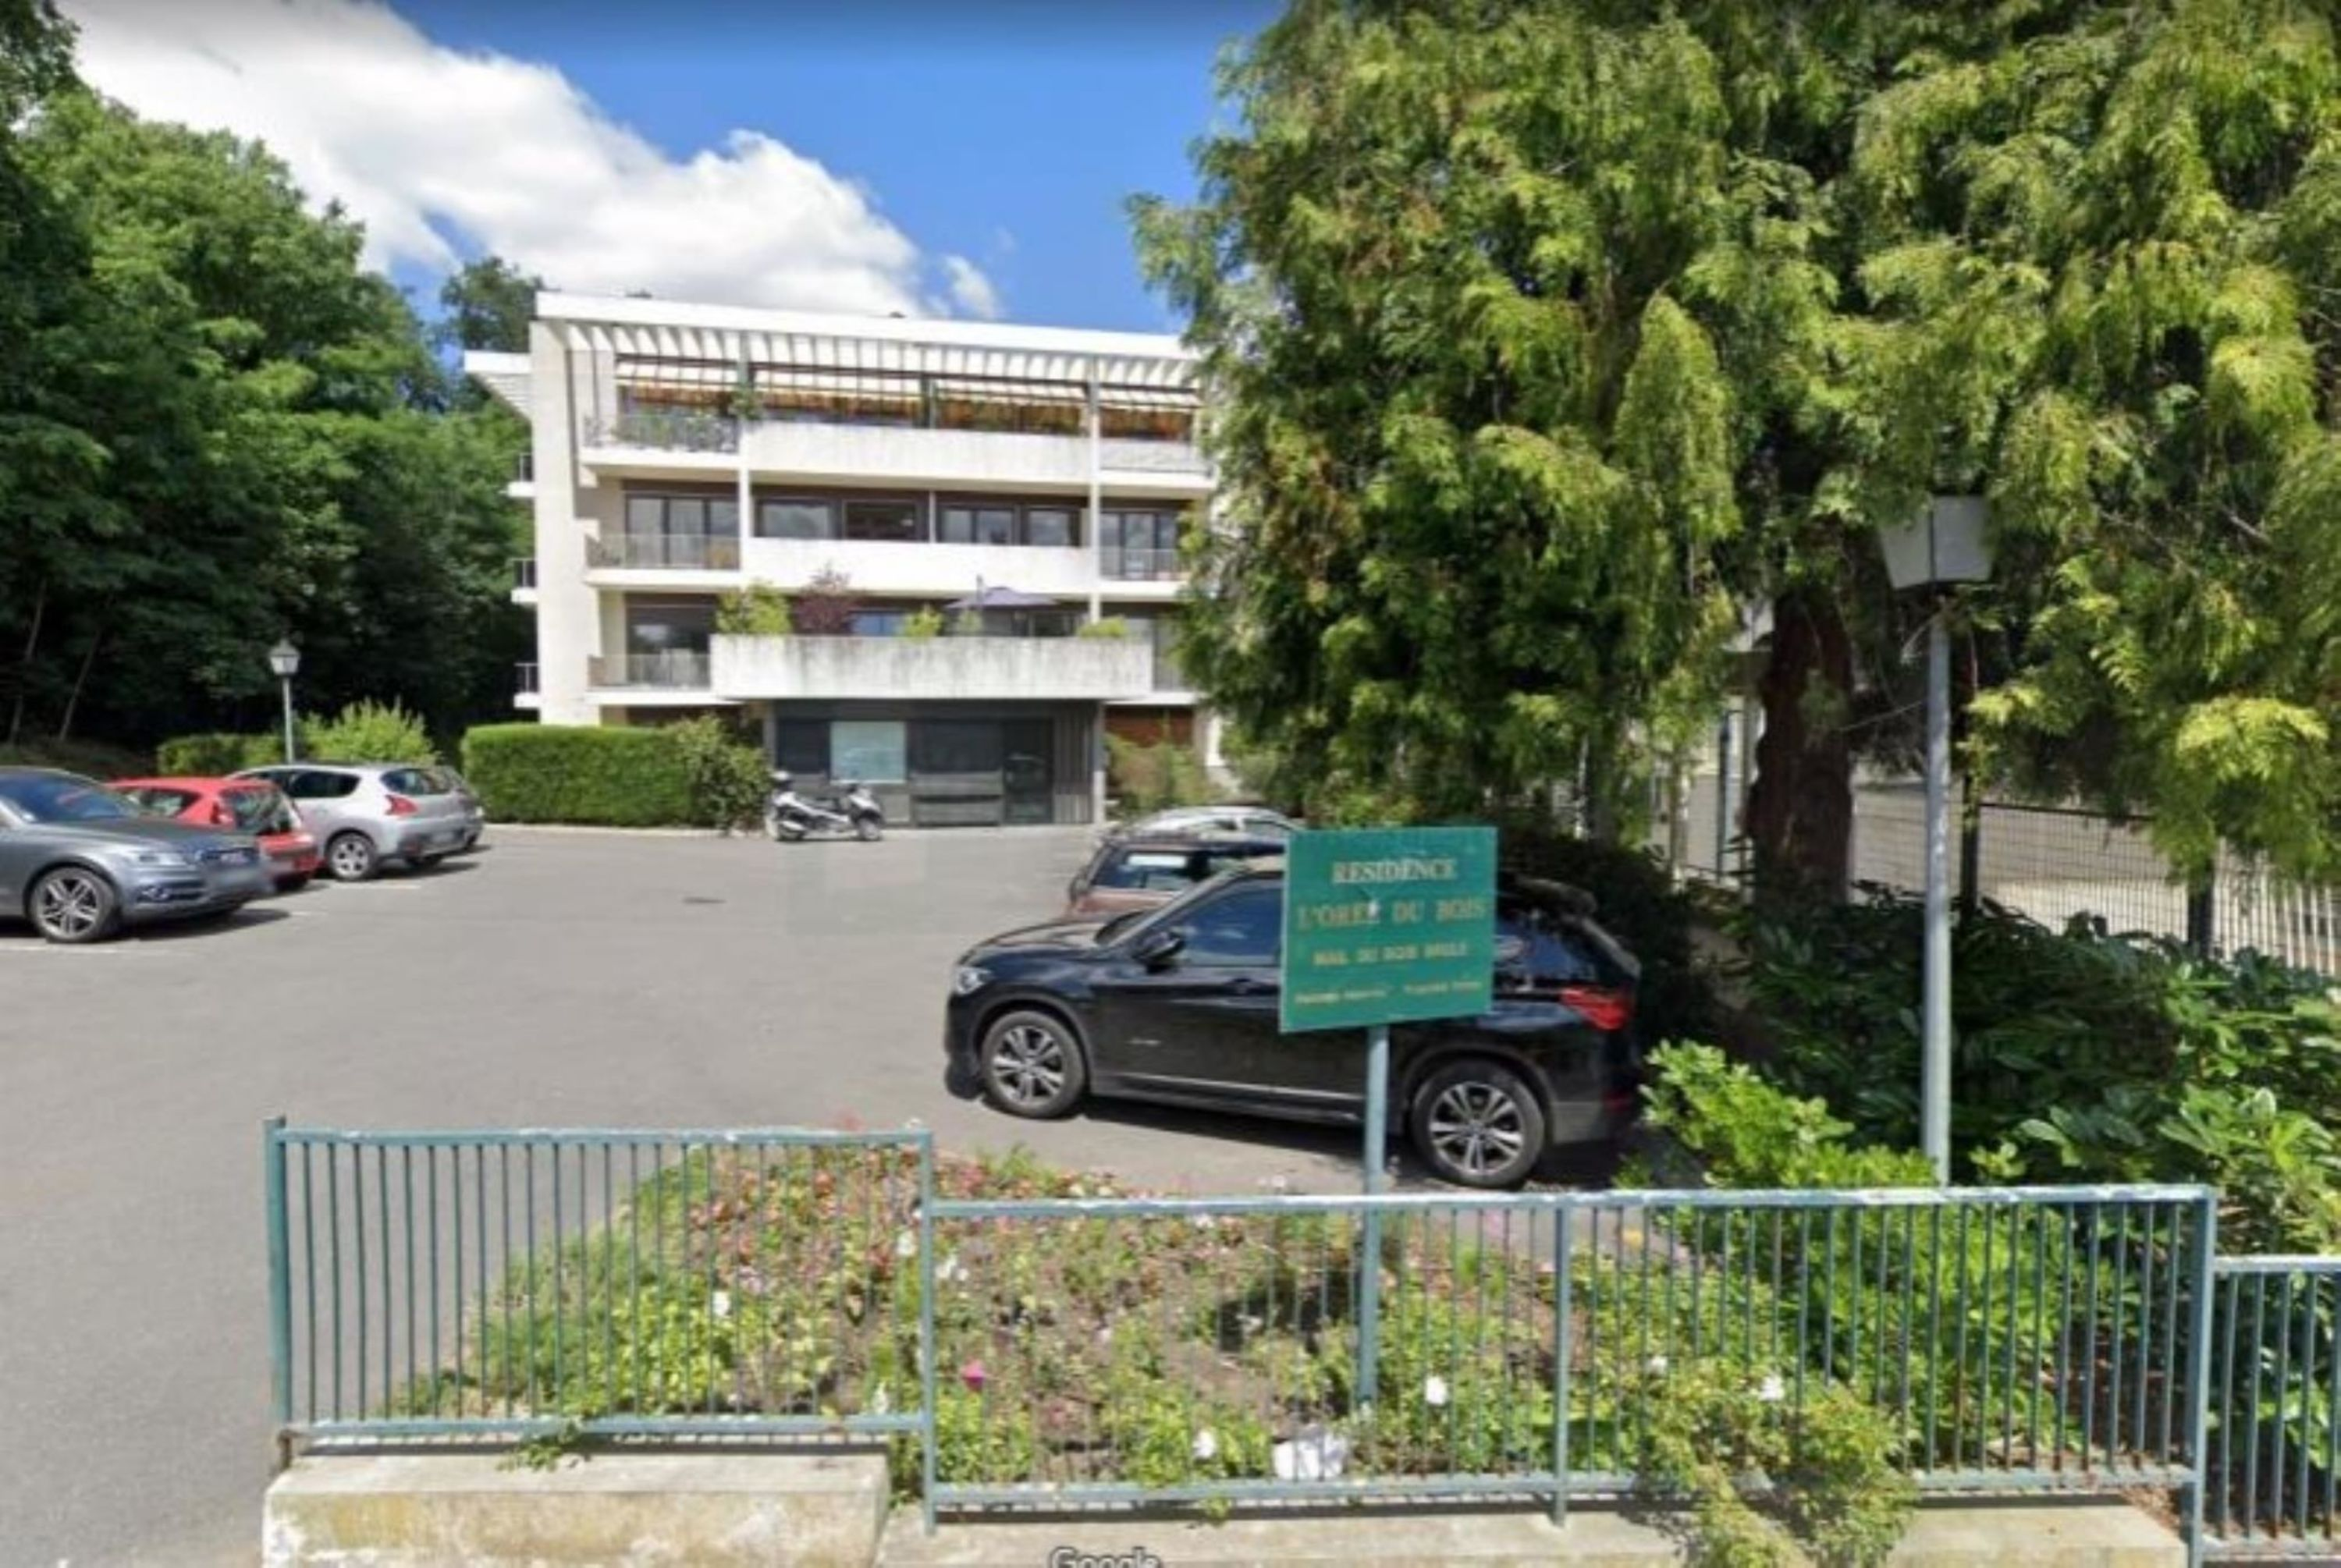 agence immobilière sevres 92 le chesnay 78 achat vente location appartement maison immobilier LMHT ANF PNHYHXSP